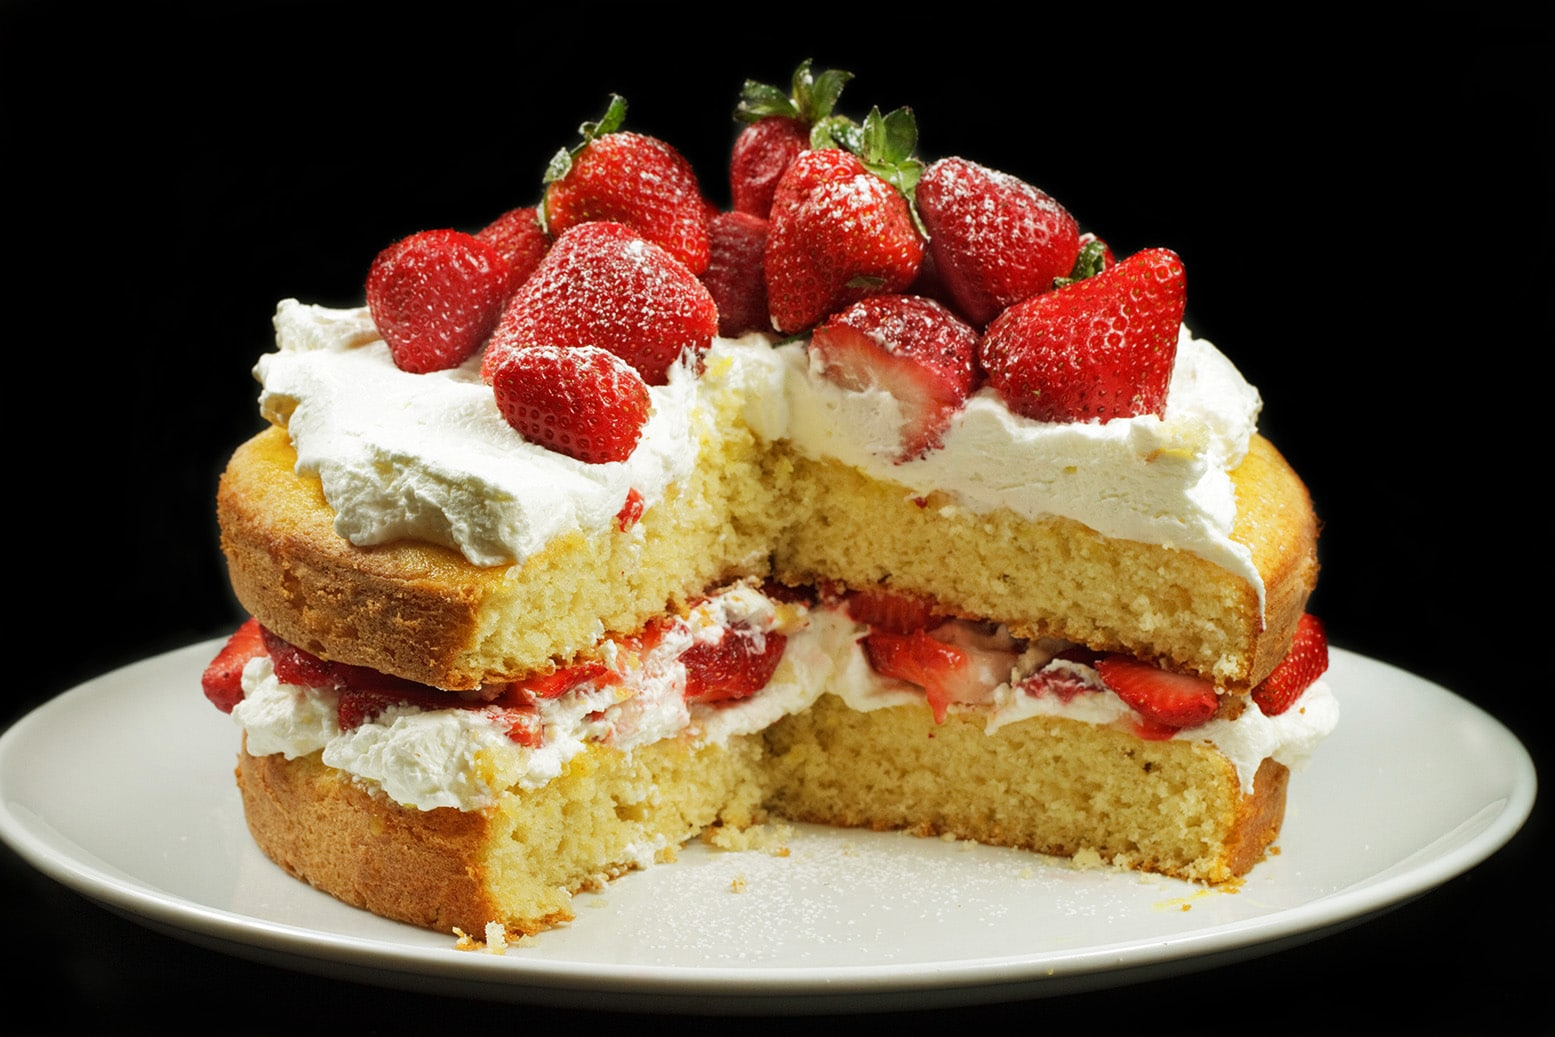 Strawberry Cream Cake strawberry cake with cream / trionfo di fragole